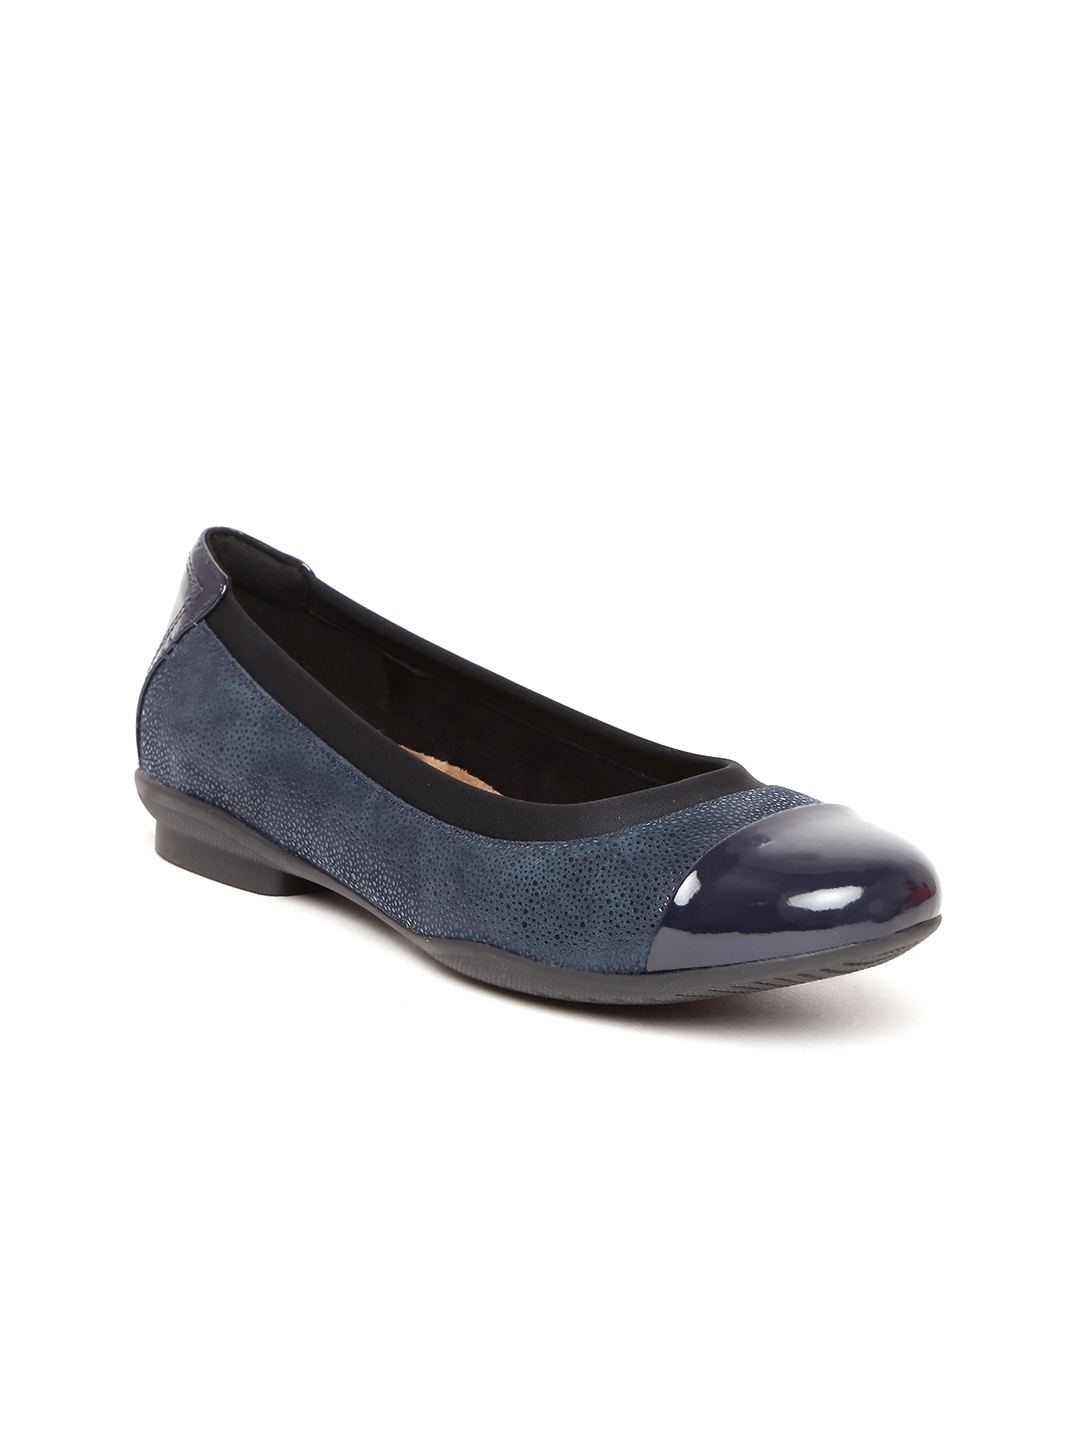 d9df76bba Buy Clarks Women Navy Solid Leather Ballerinas - Flats for Women ...